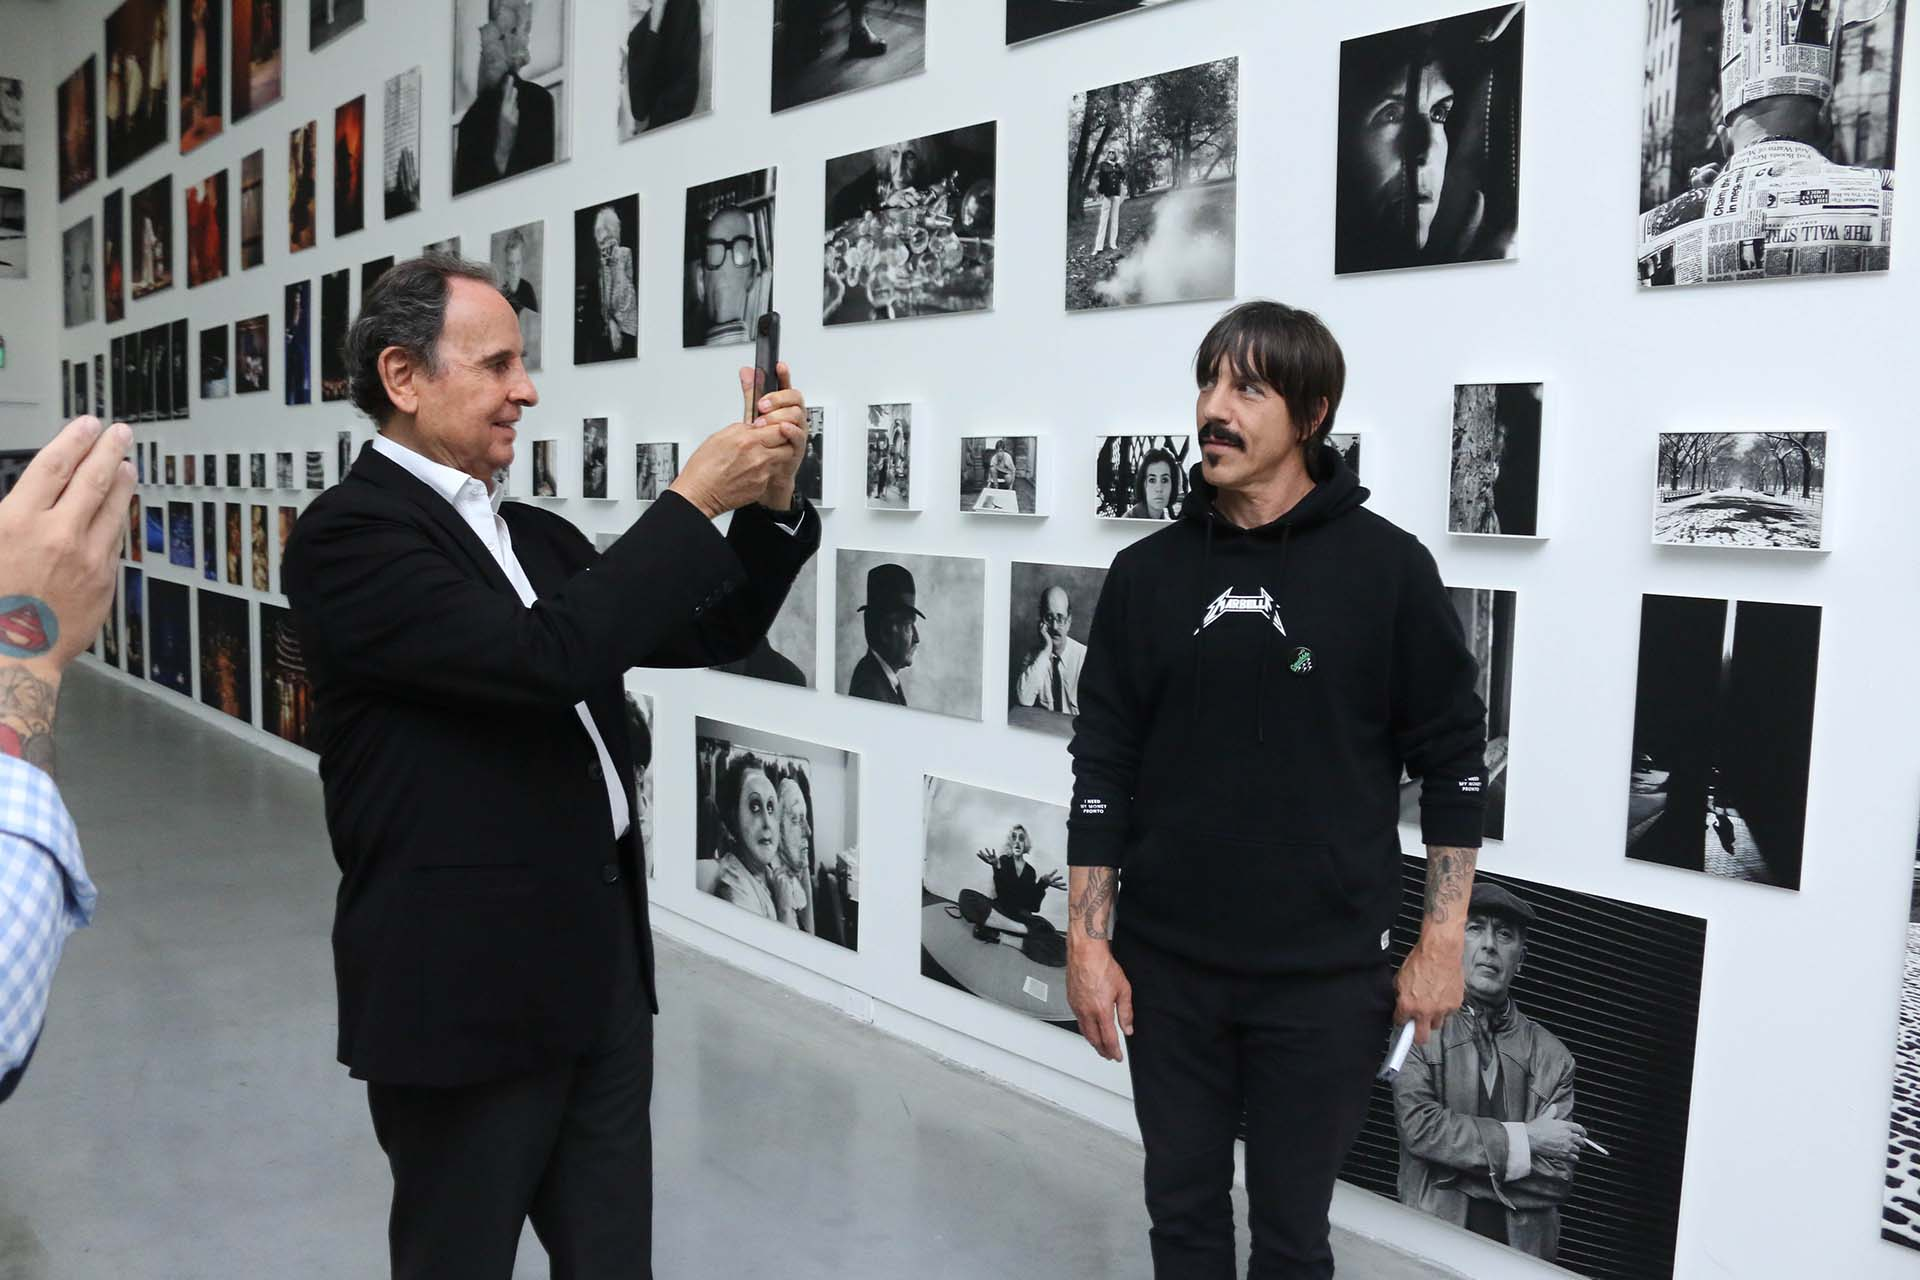 Aldo Sessa y Anthony Kiedis, líder de los Red Hot Chili Peppers